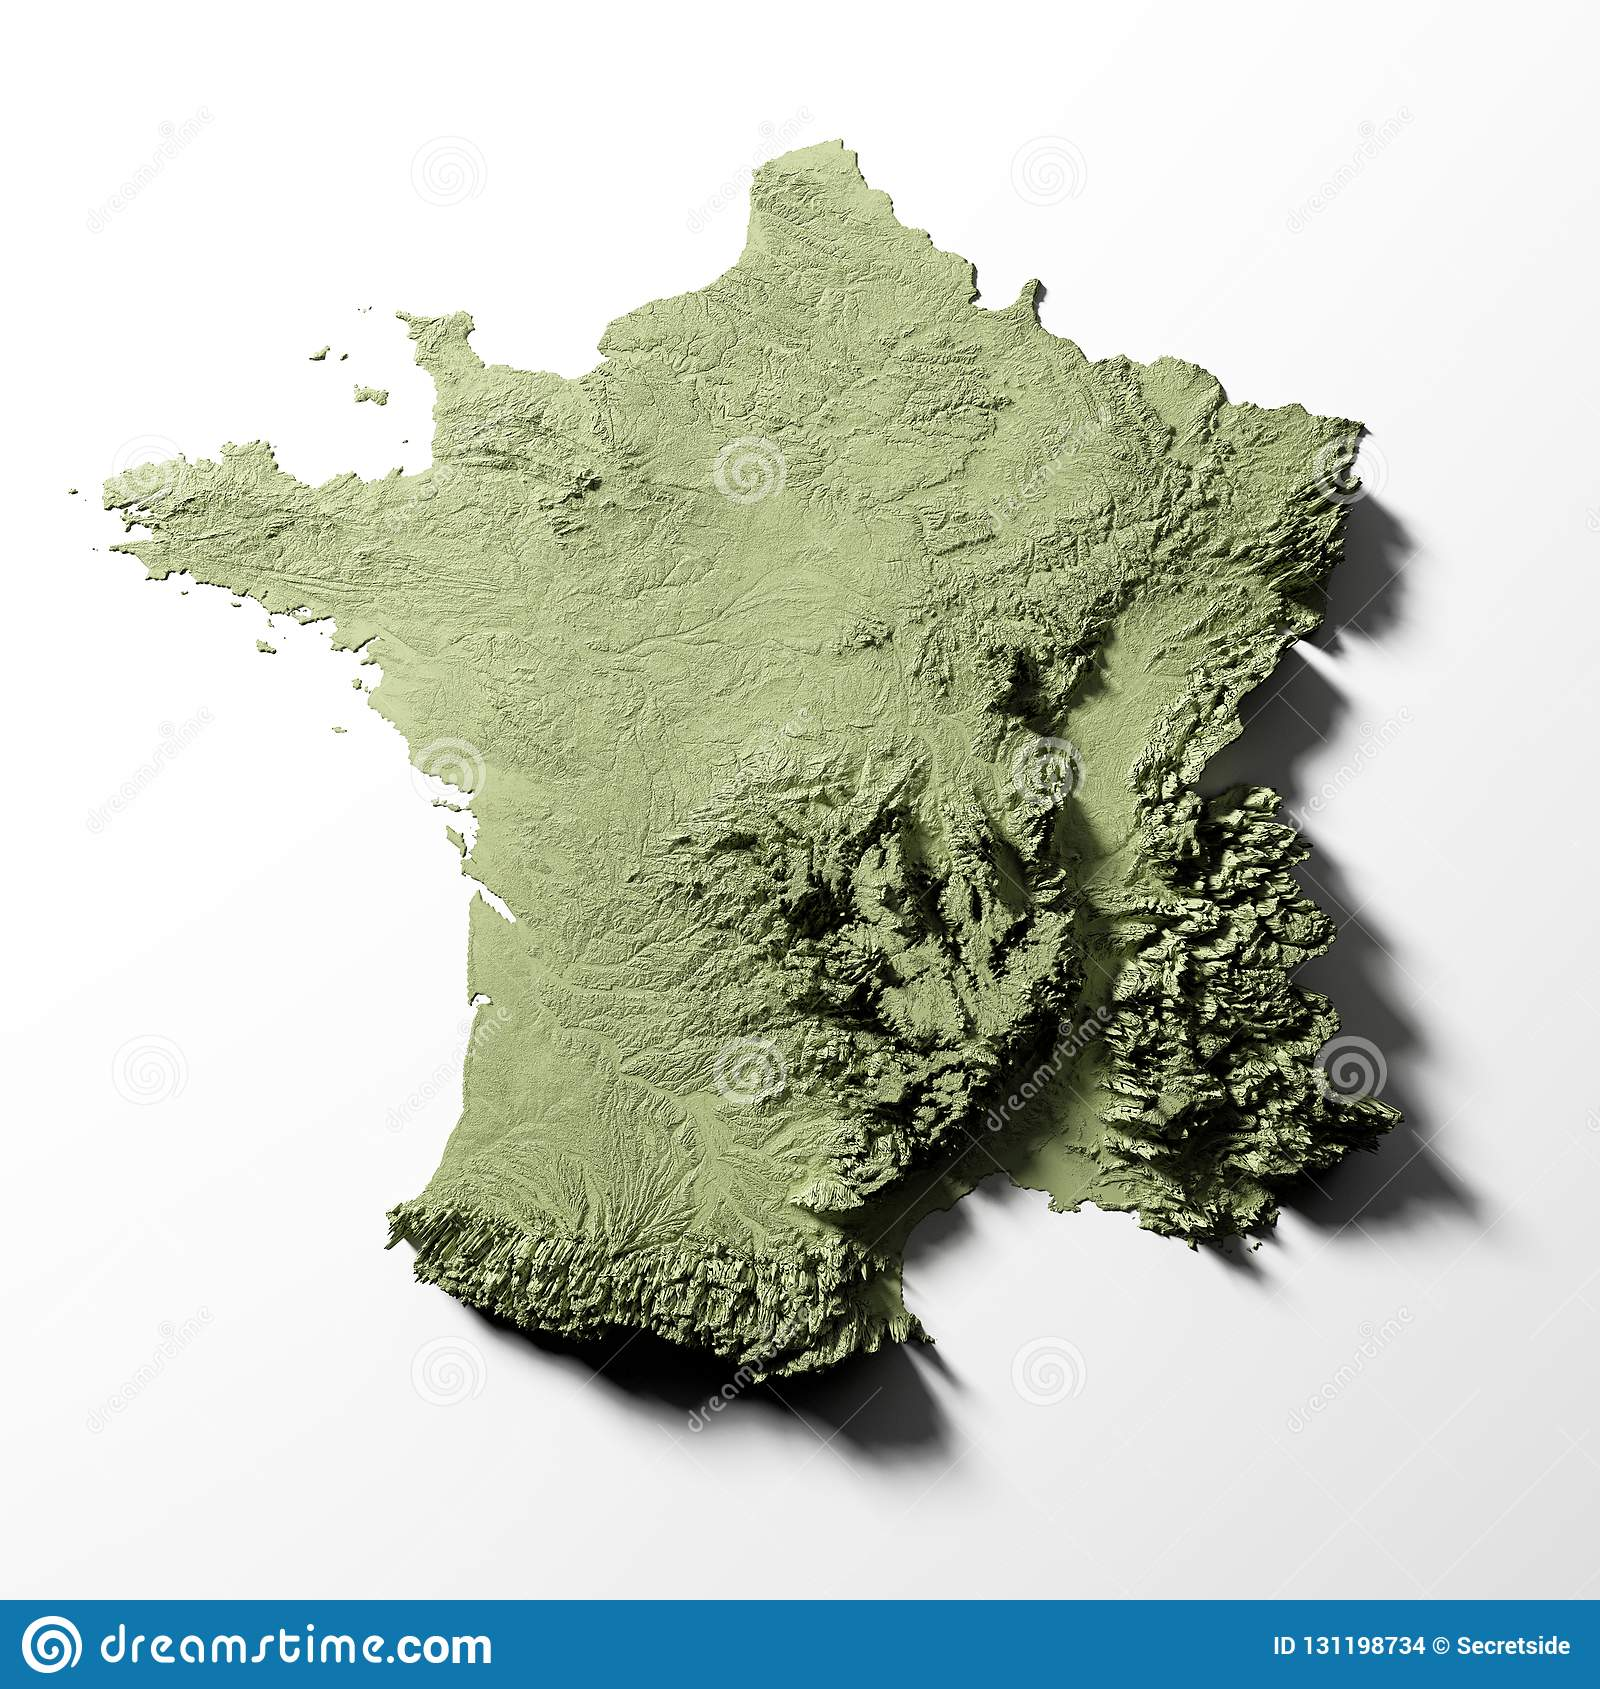 France relief map stock illustration. Illustration of land ...